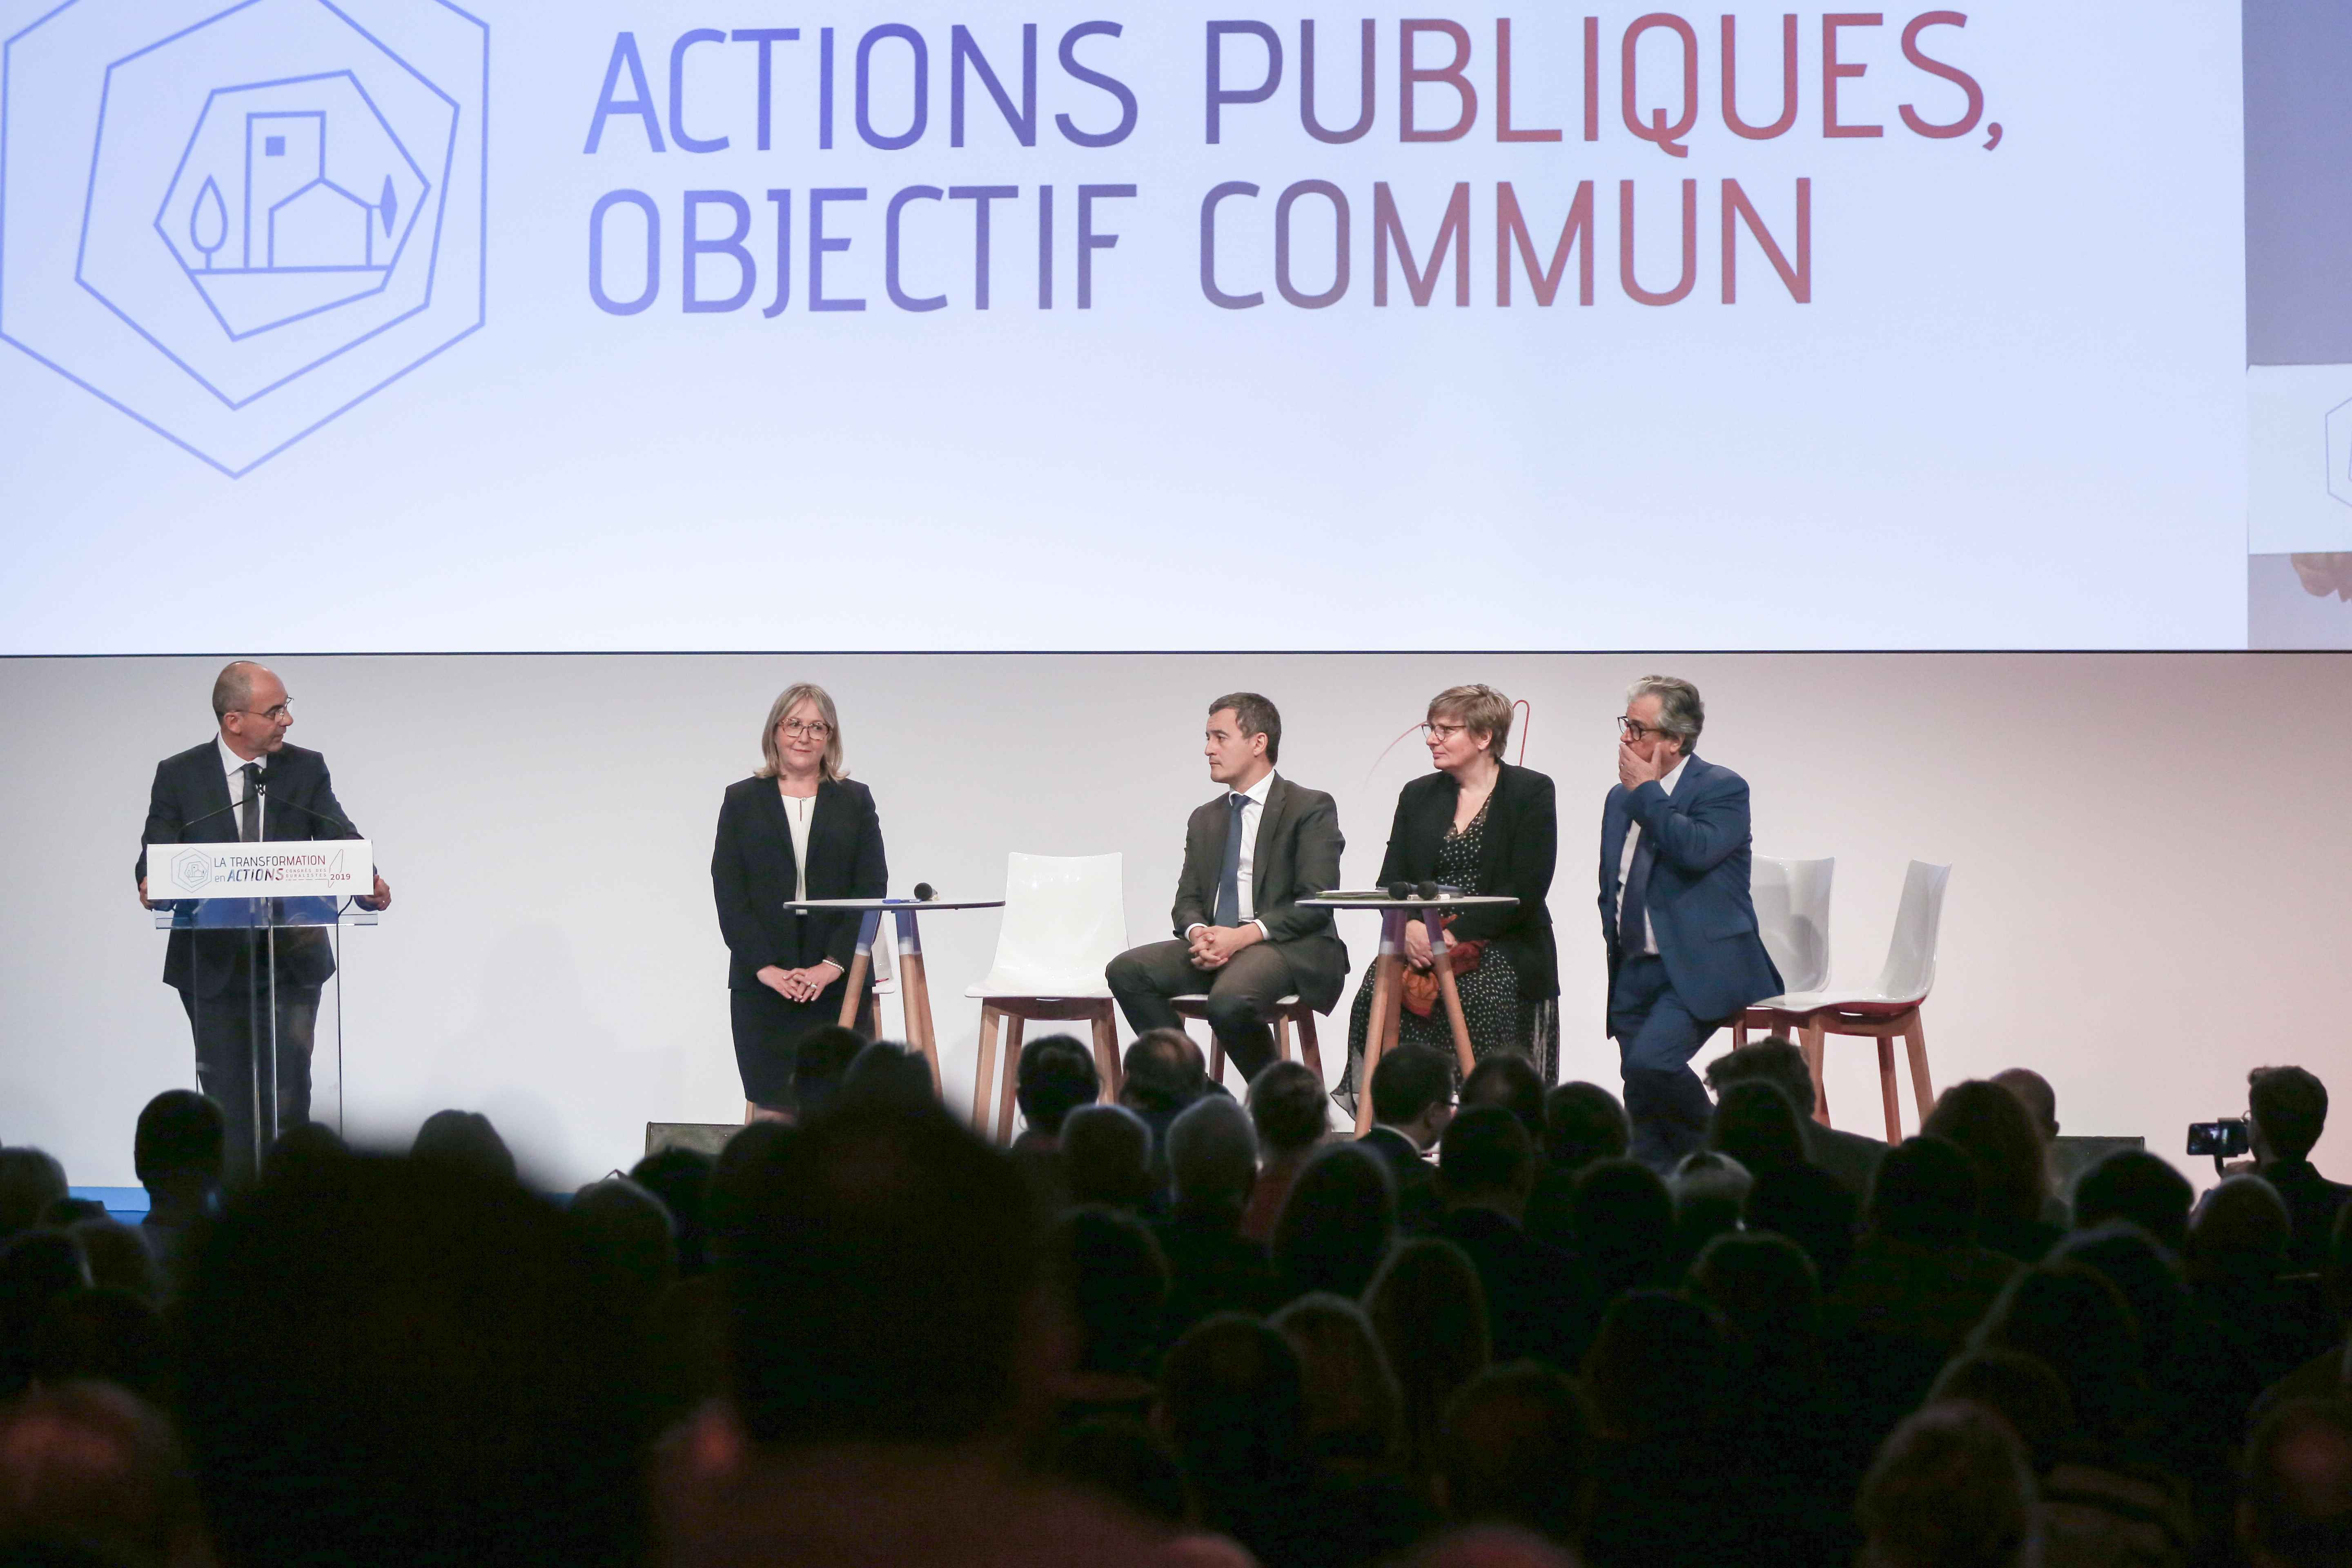 Philippe Coy (L), President of the National Tobacconists  Confederation, adresses tobacconists, in front of French Minister for Public Action and Accounts Gerald Darmanin (3R), during the Congress of the Confederation in Paris, on October 10, 2019. In the